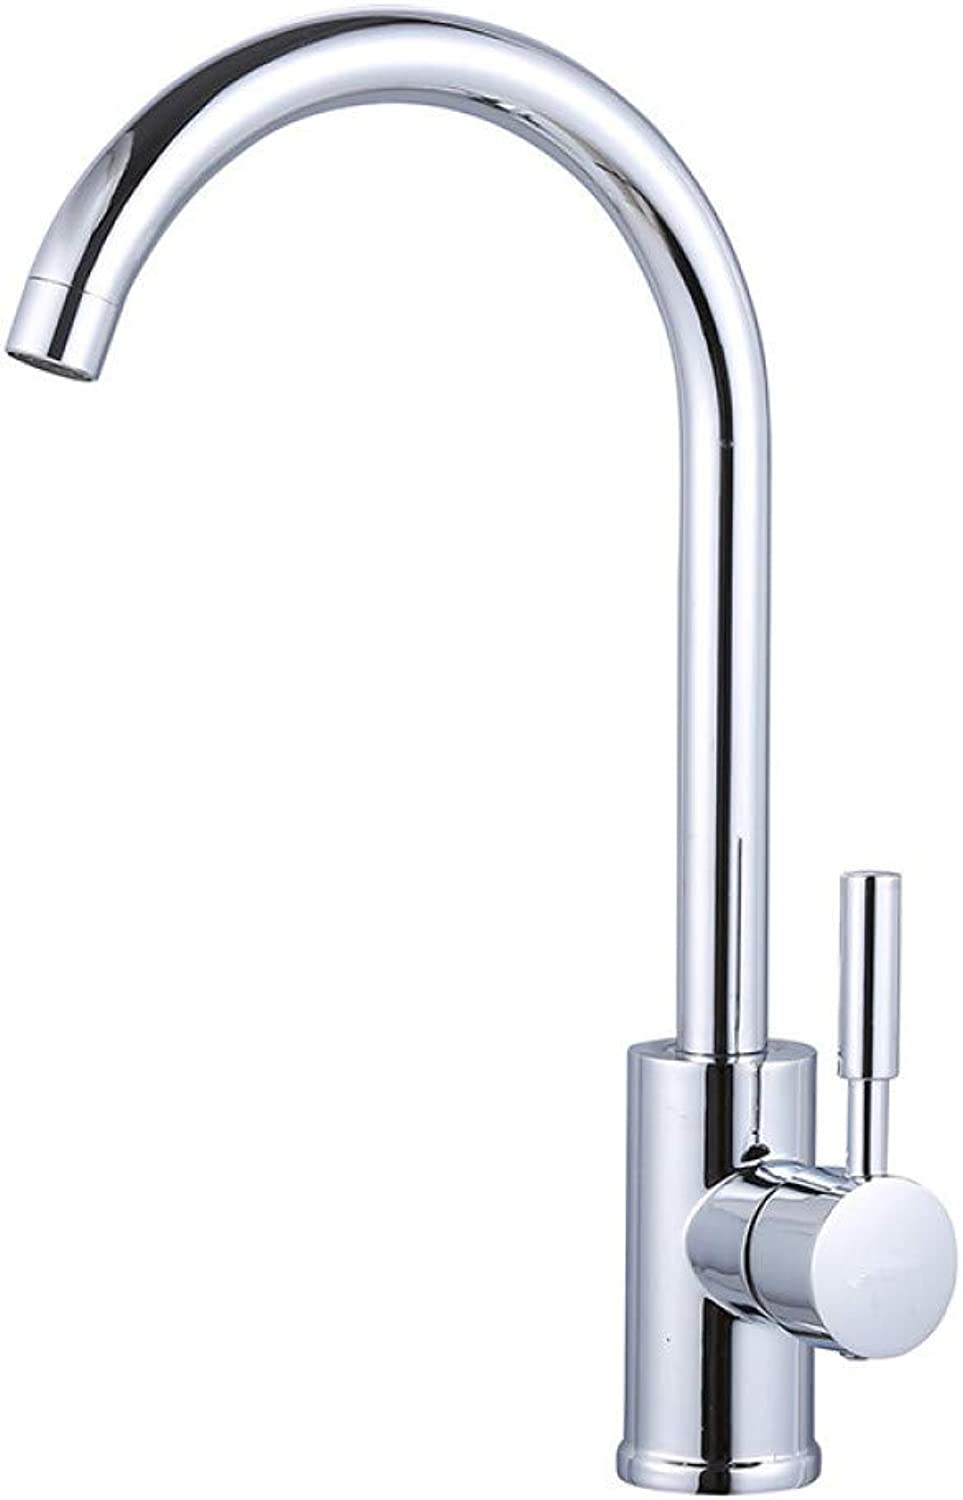 PZXY Faucet Kitchen hot and Cold Faucet Household Sink All Copper redatable Faucet